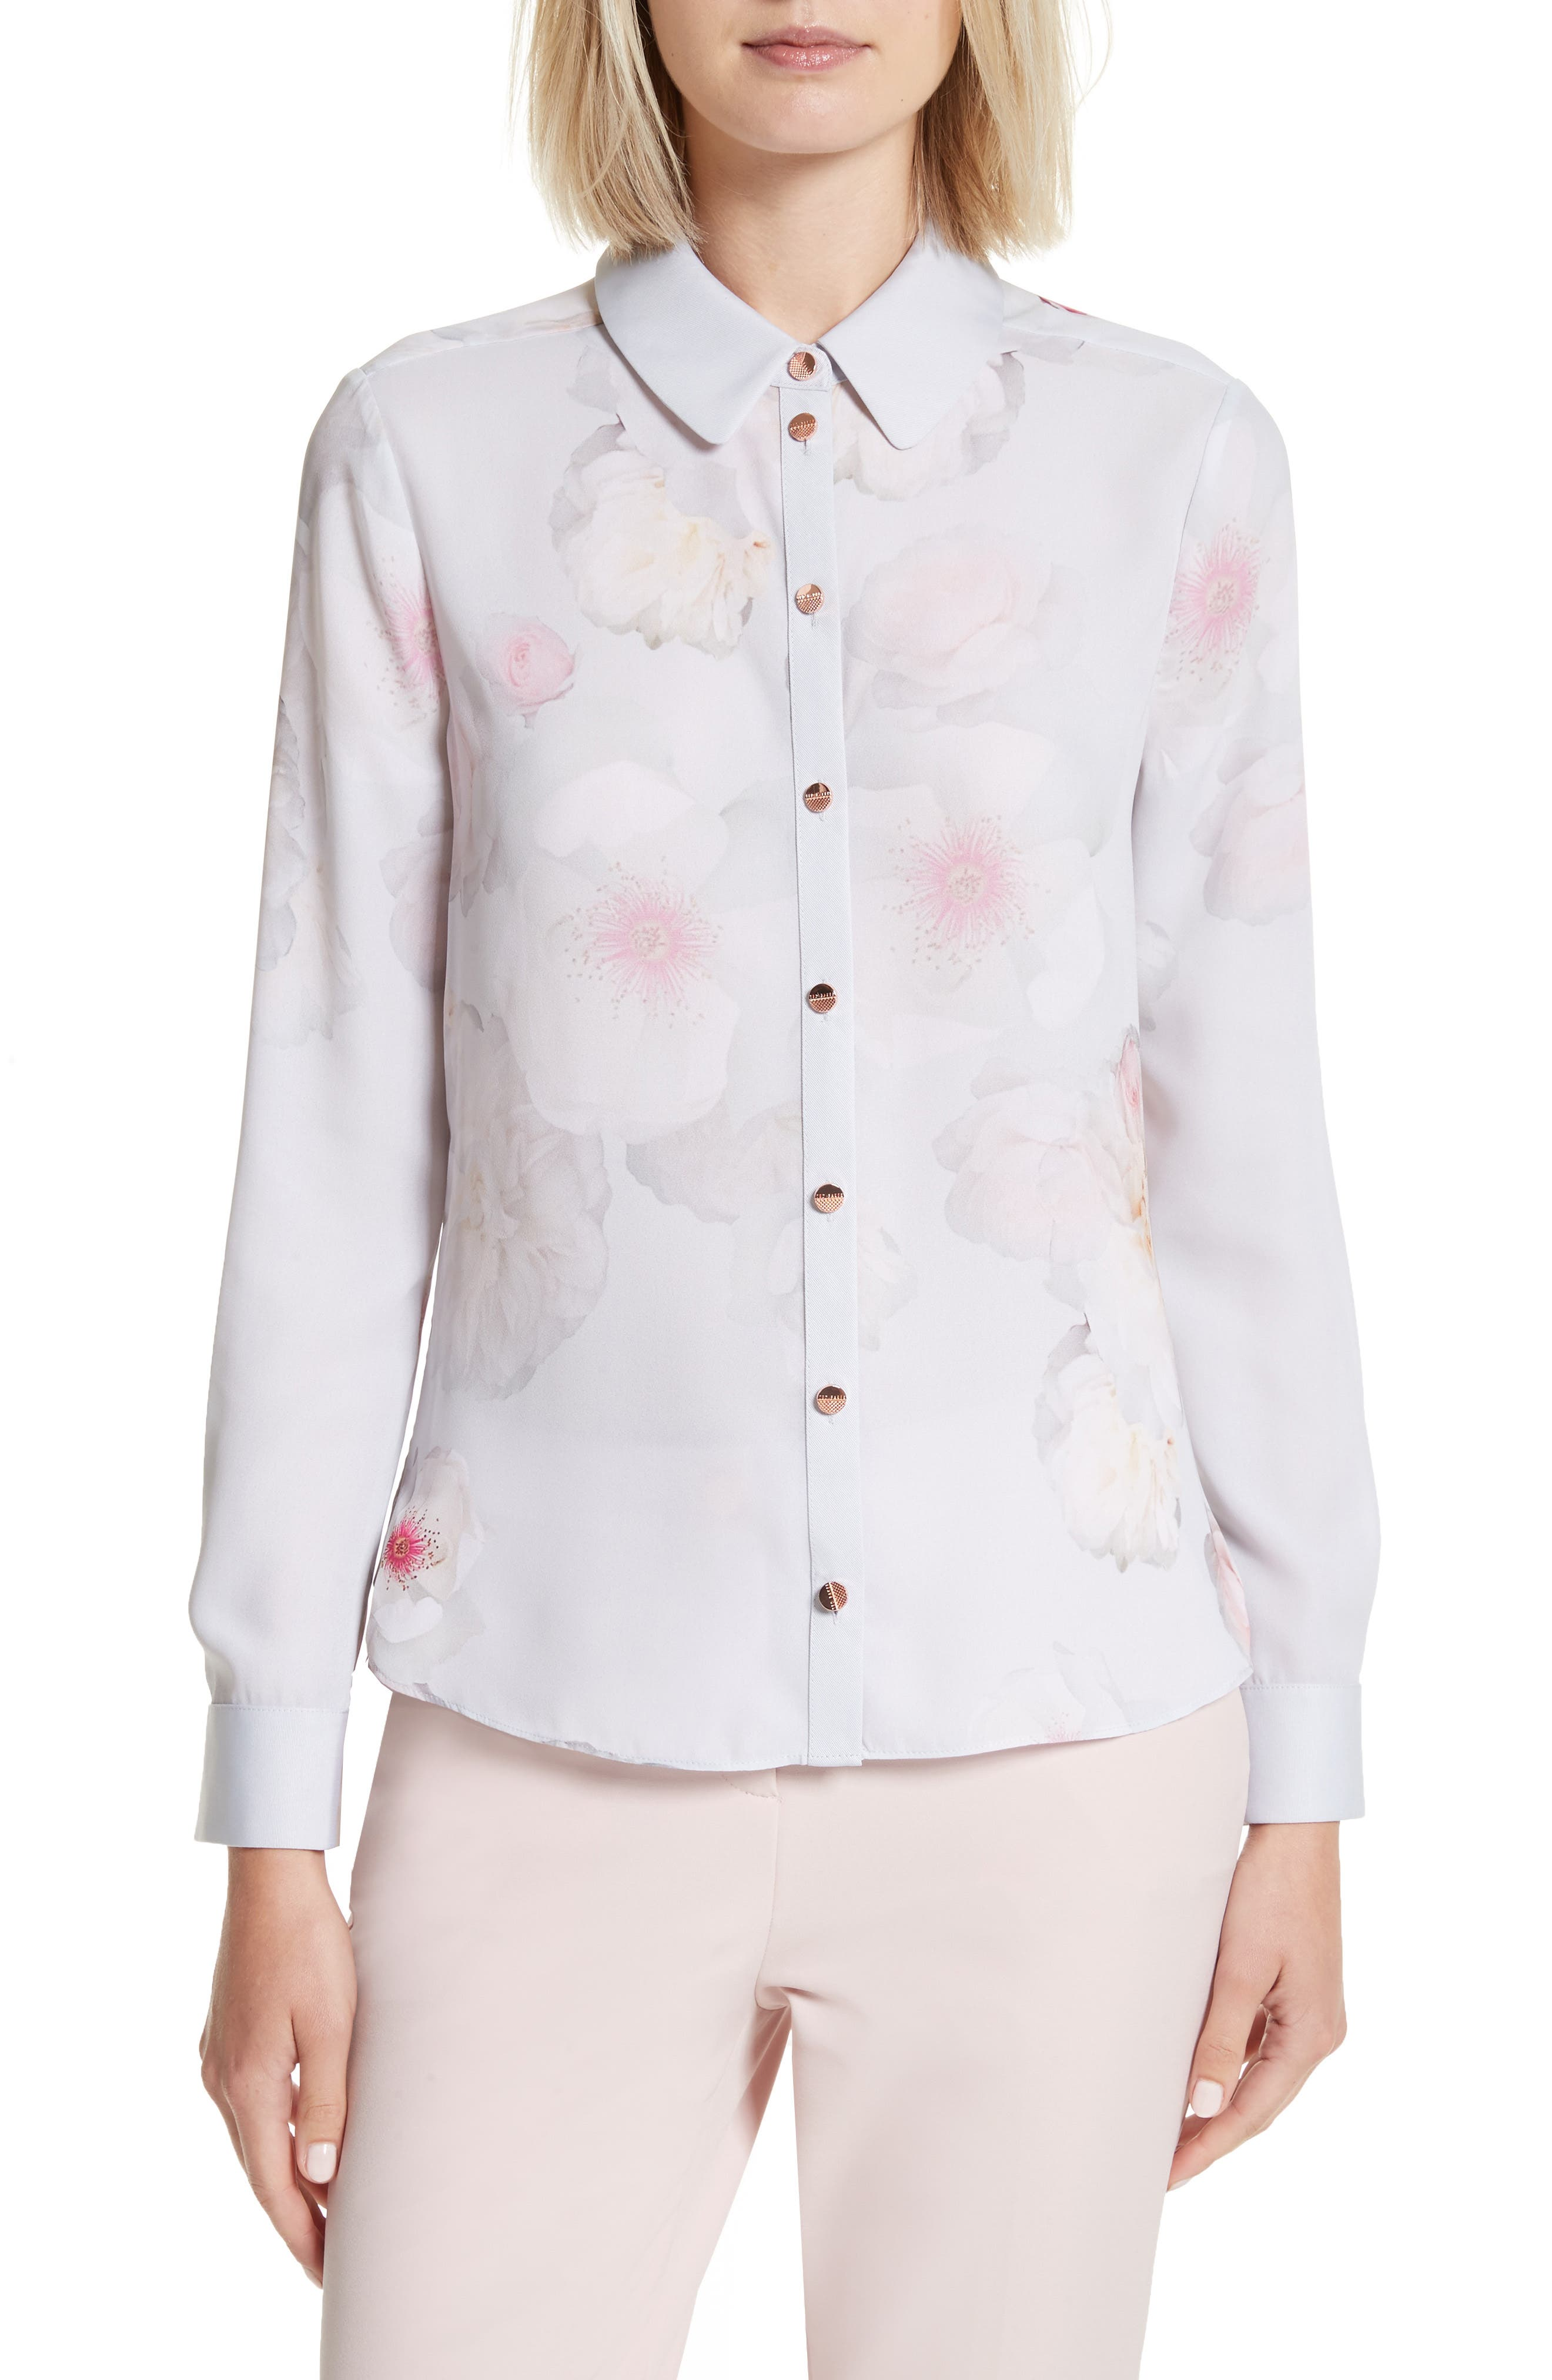 Relar Chelsea Grey Flower Print Shirt,                             Main thumbnail 1, color,                             Mid Grey